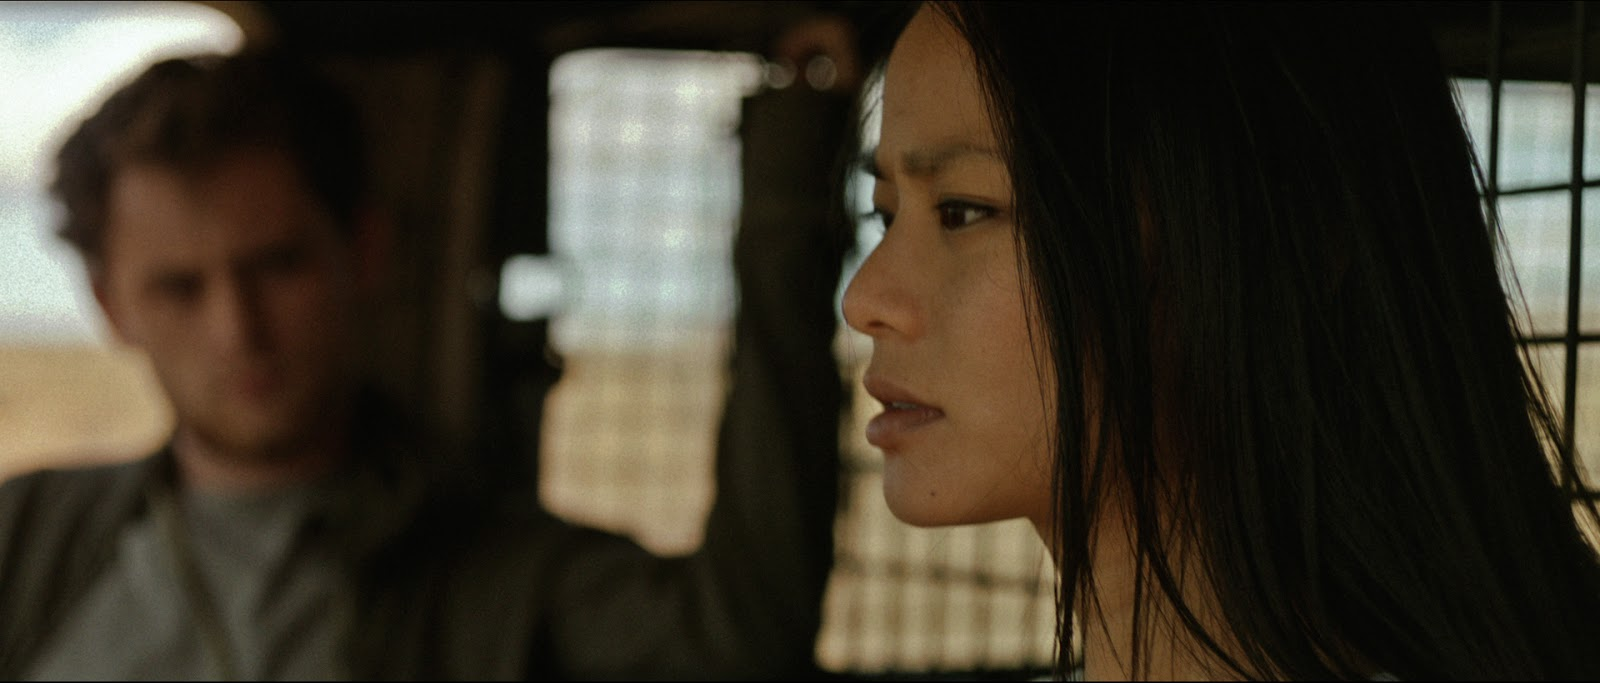 Jamie Chung Scene rethinking sex trafficking and voyeurism: 'taken' and 'eden